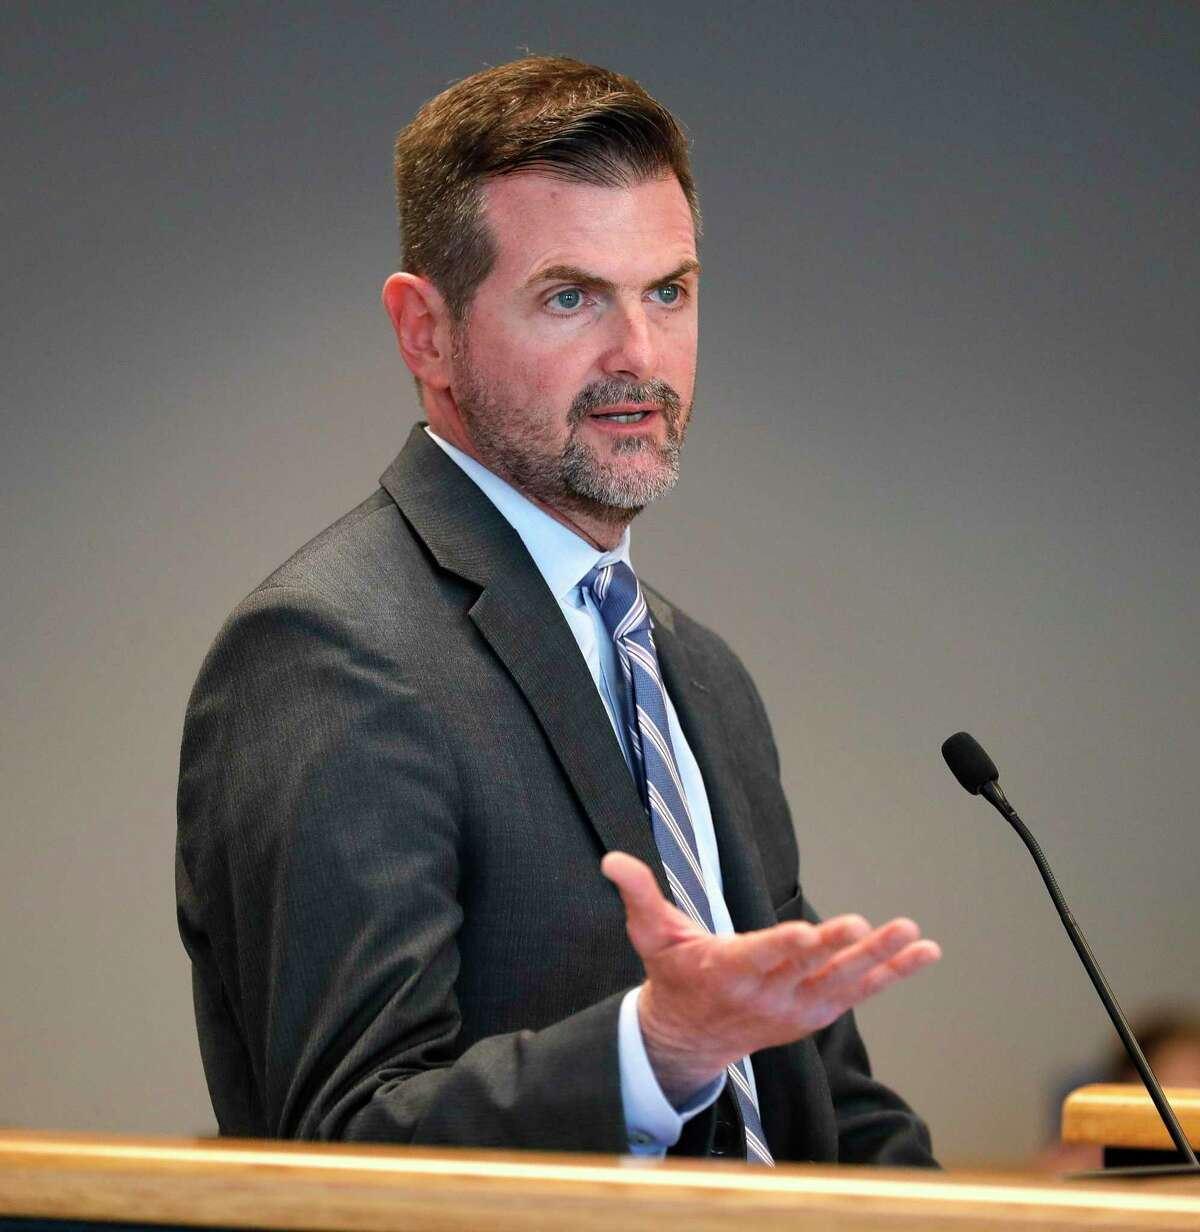 Sen. Brandon Creighton, R-Conroe, speaks during a special session of the Montgomery County Commissioners Court called after county health officials announced the second presumptive positive case of COVID-19, Thursday, March 12, 2020, in Conroe.